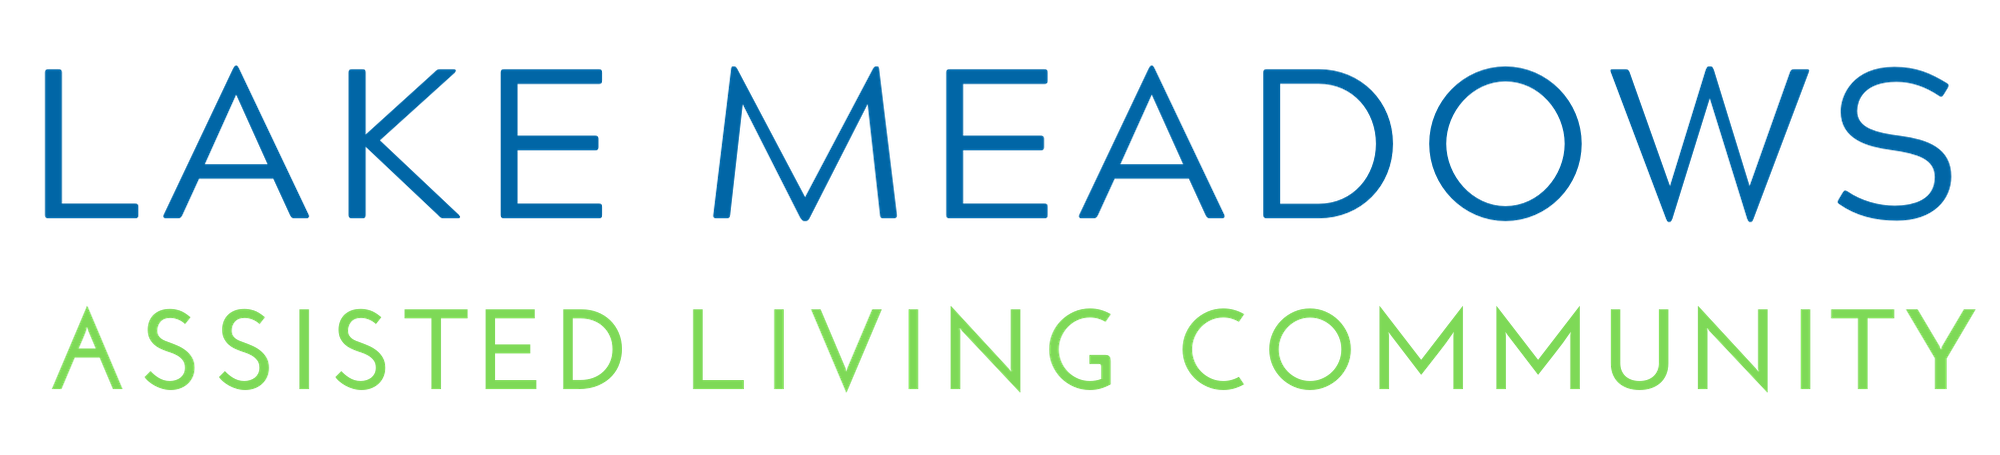 Lake Meadows Assisted Living